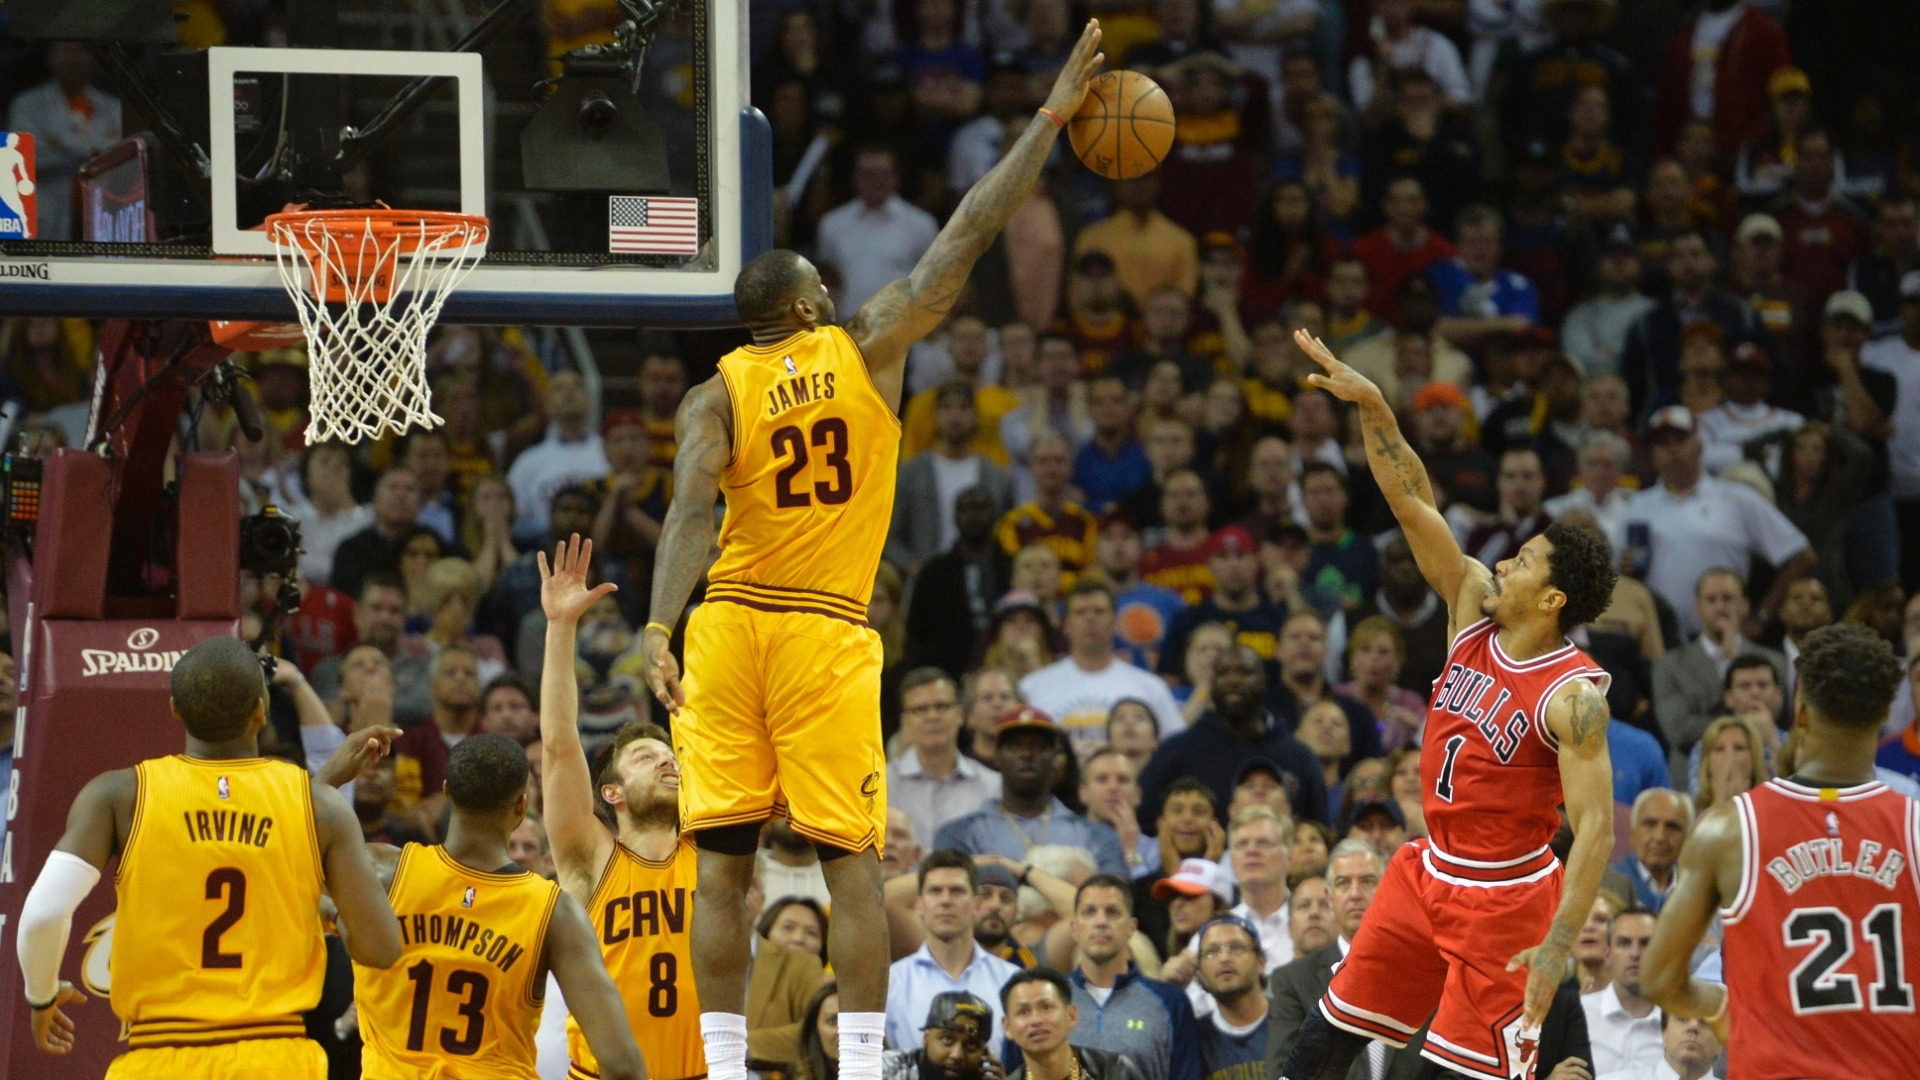 LeBron James dá lindo toco em Derrick Rose no minuto final da vitória do Cleveland Cavaliers sobre o Chicago Bulls